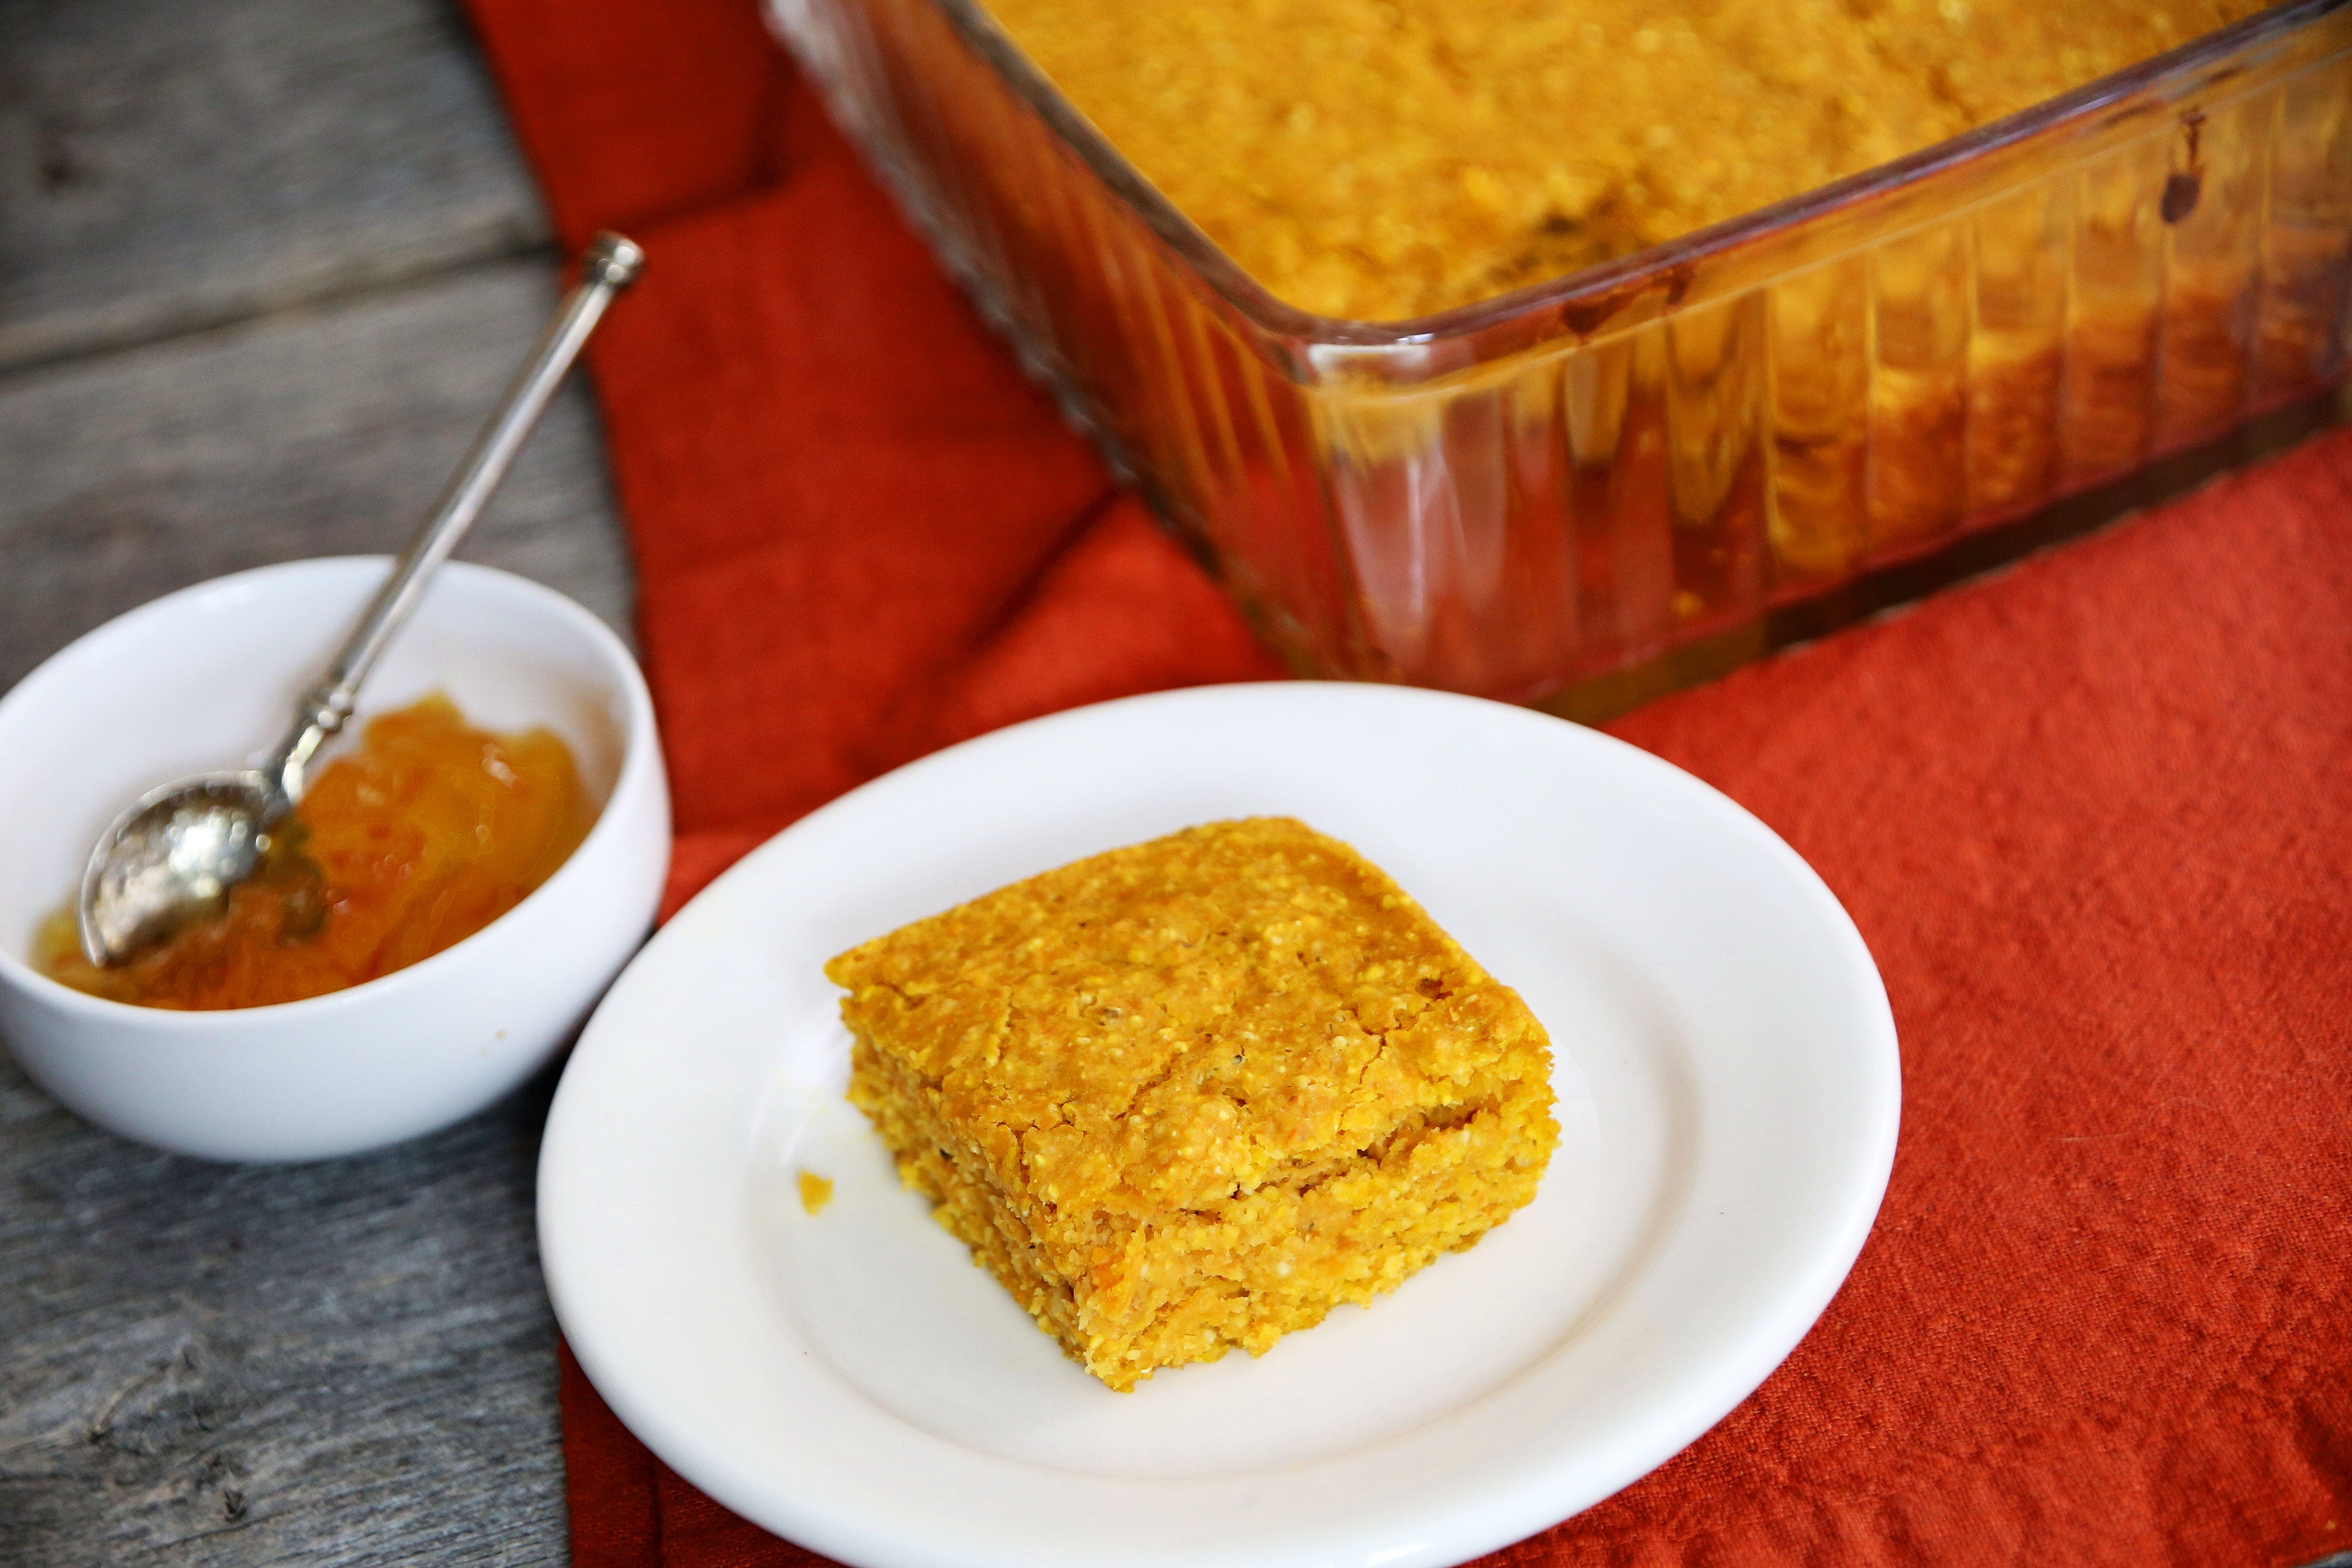 Bake Some Kabocha Cornbread to Share